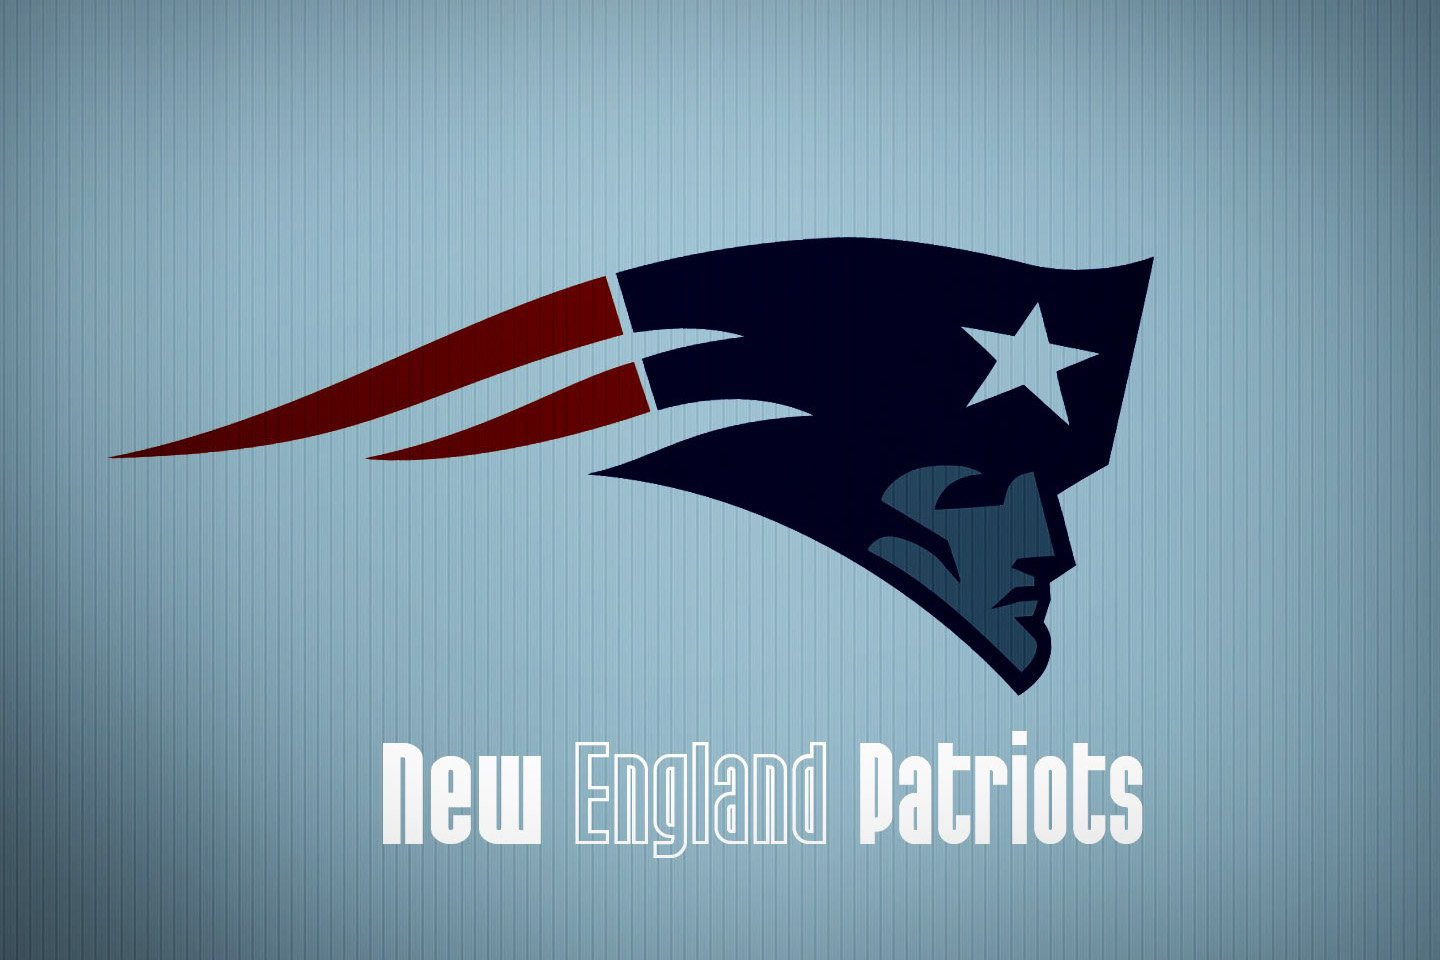 patriots Wallpaper and Background Image | 1440x960 | ID ...